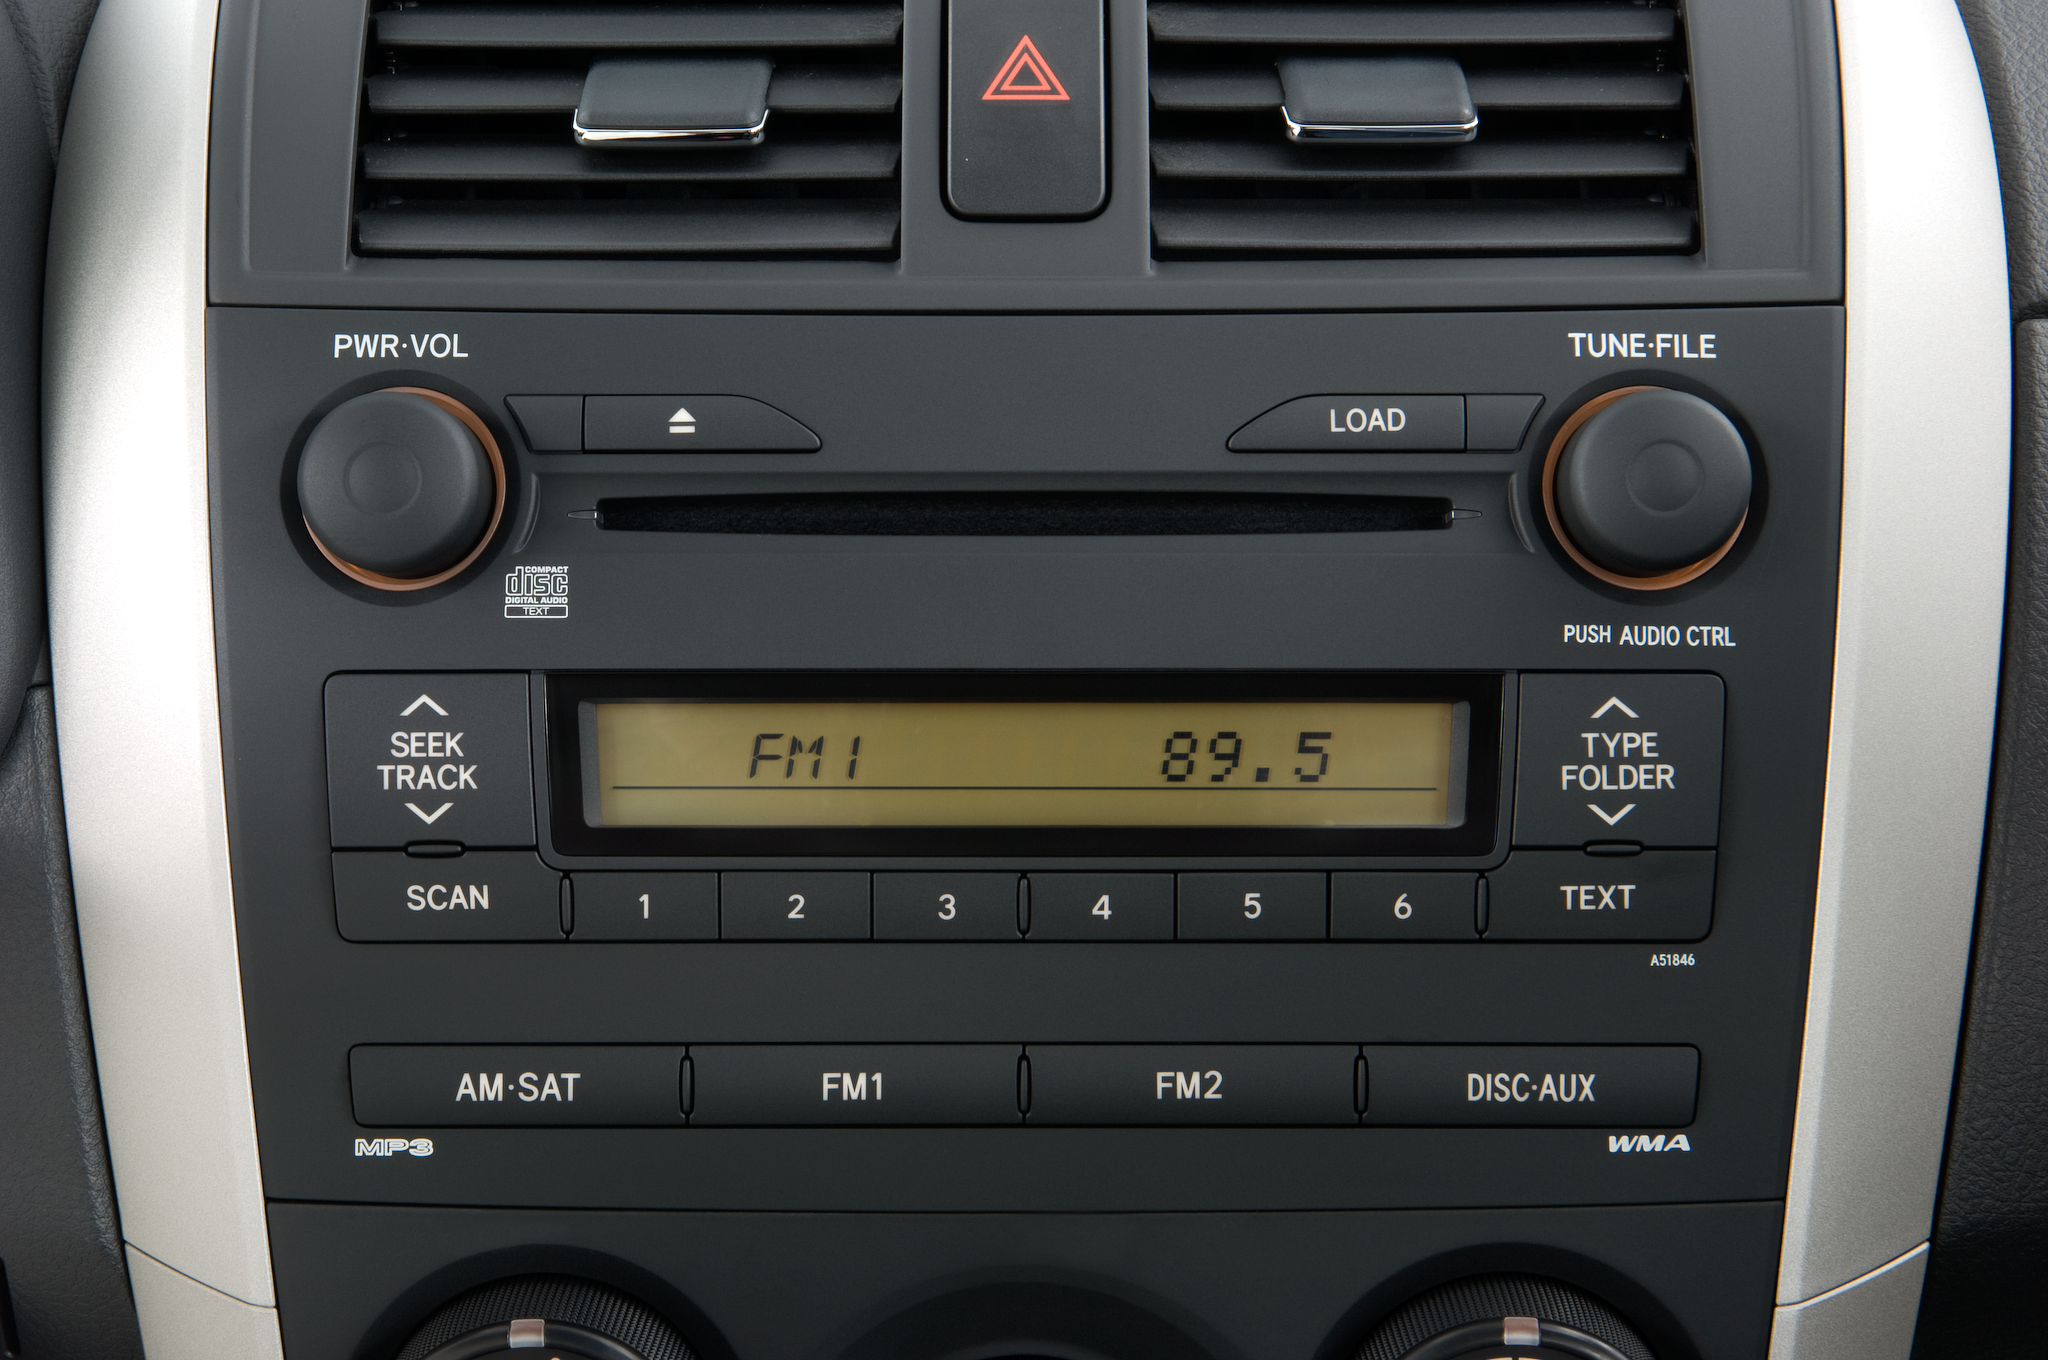 Diagram 01 Camry Cd Player Wiring Diagram Full Version Hd Quality Wiring Diagram Outlookdiagraml Wecsrl It